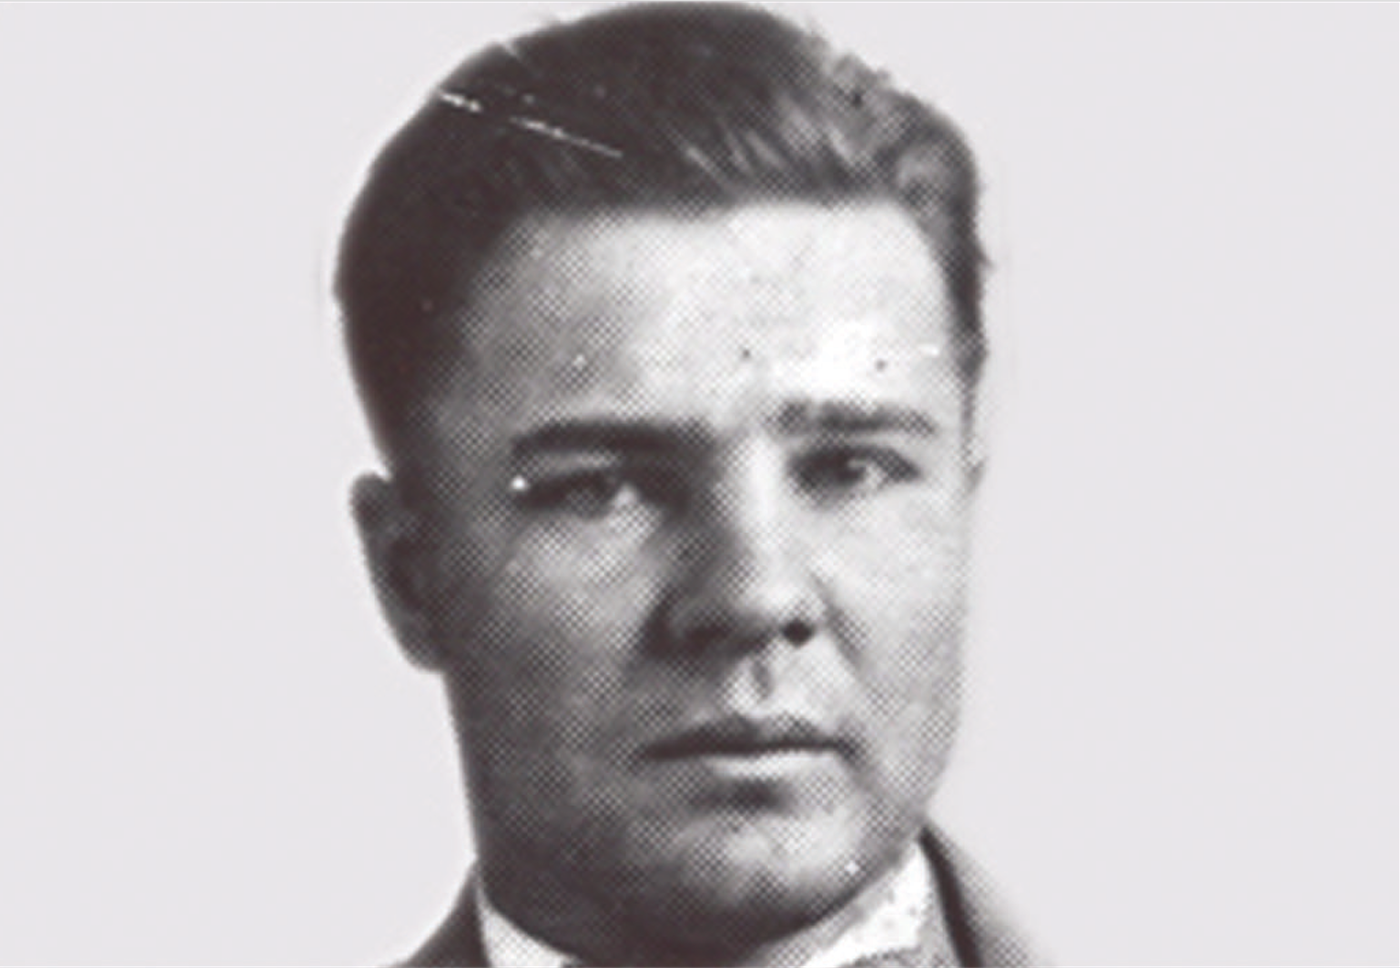 Charles Arthur Floyd, better known as 'Pretty Boy' Floyd.